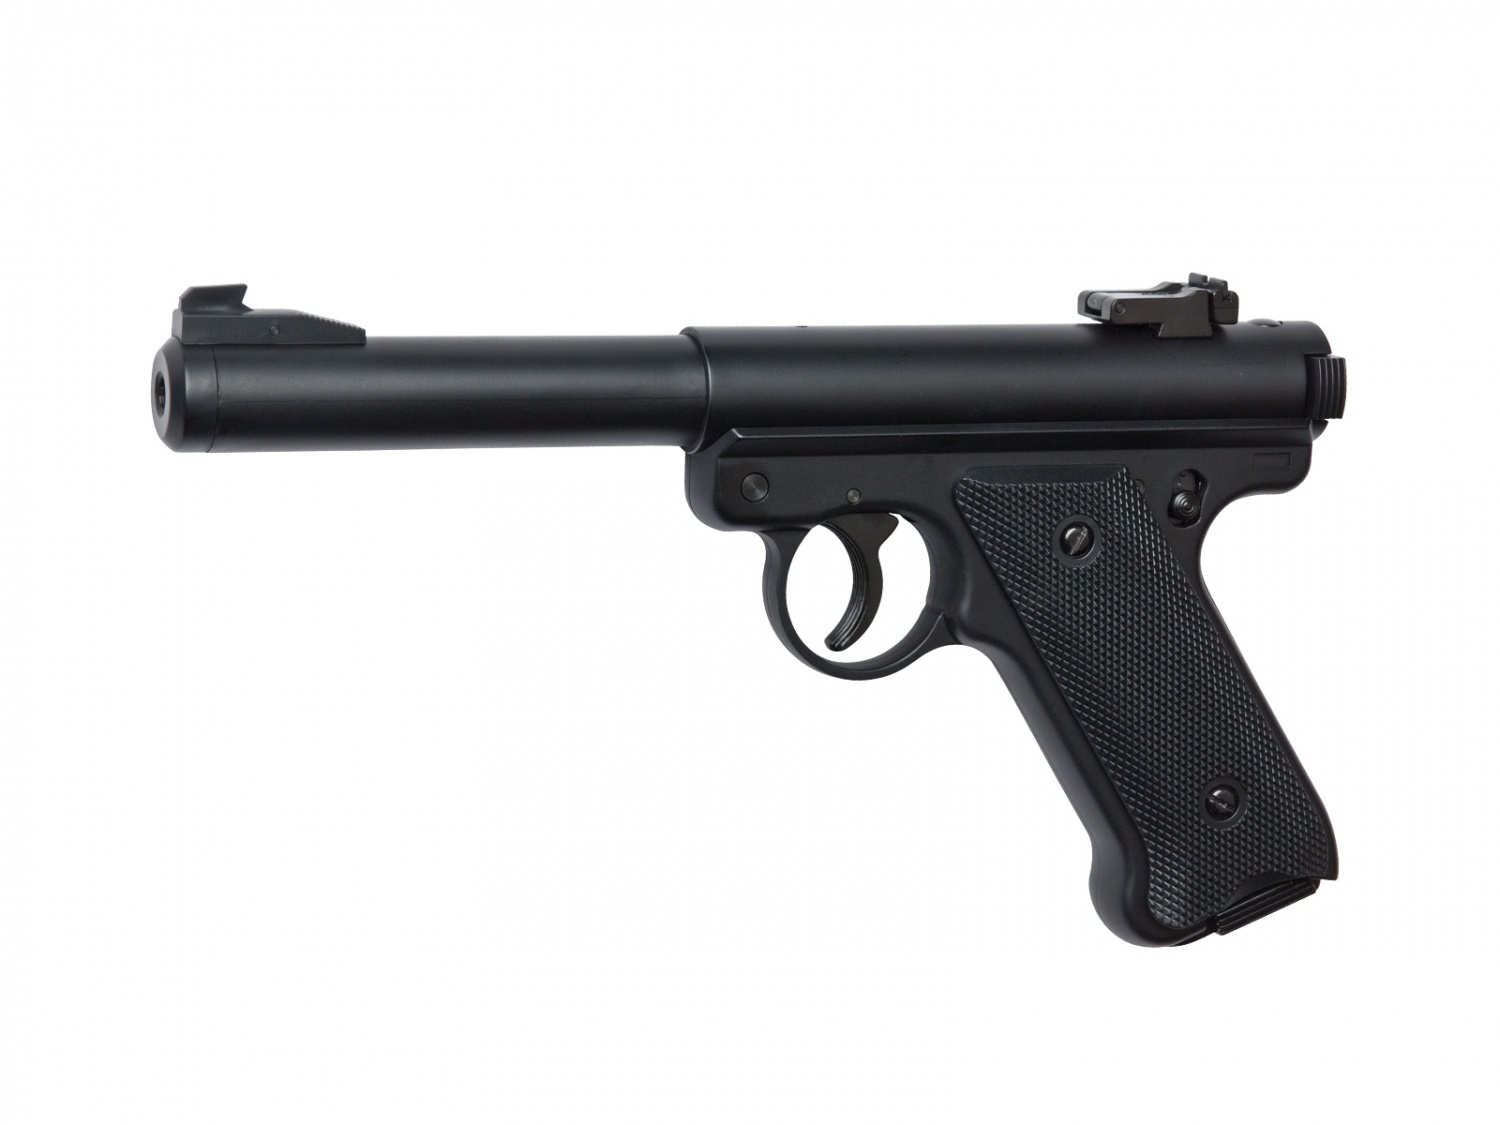 Image of ASG MK1 gas